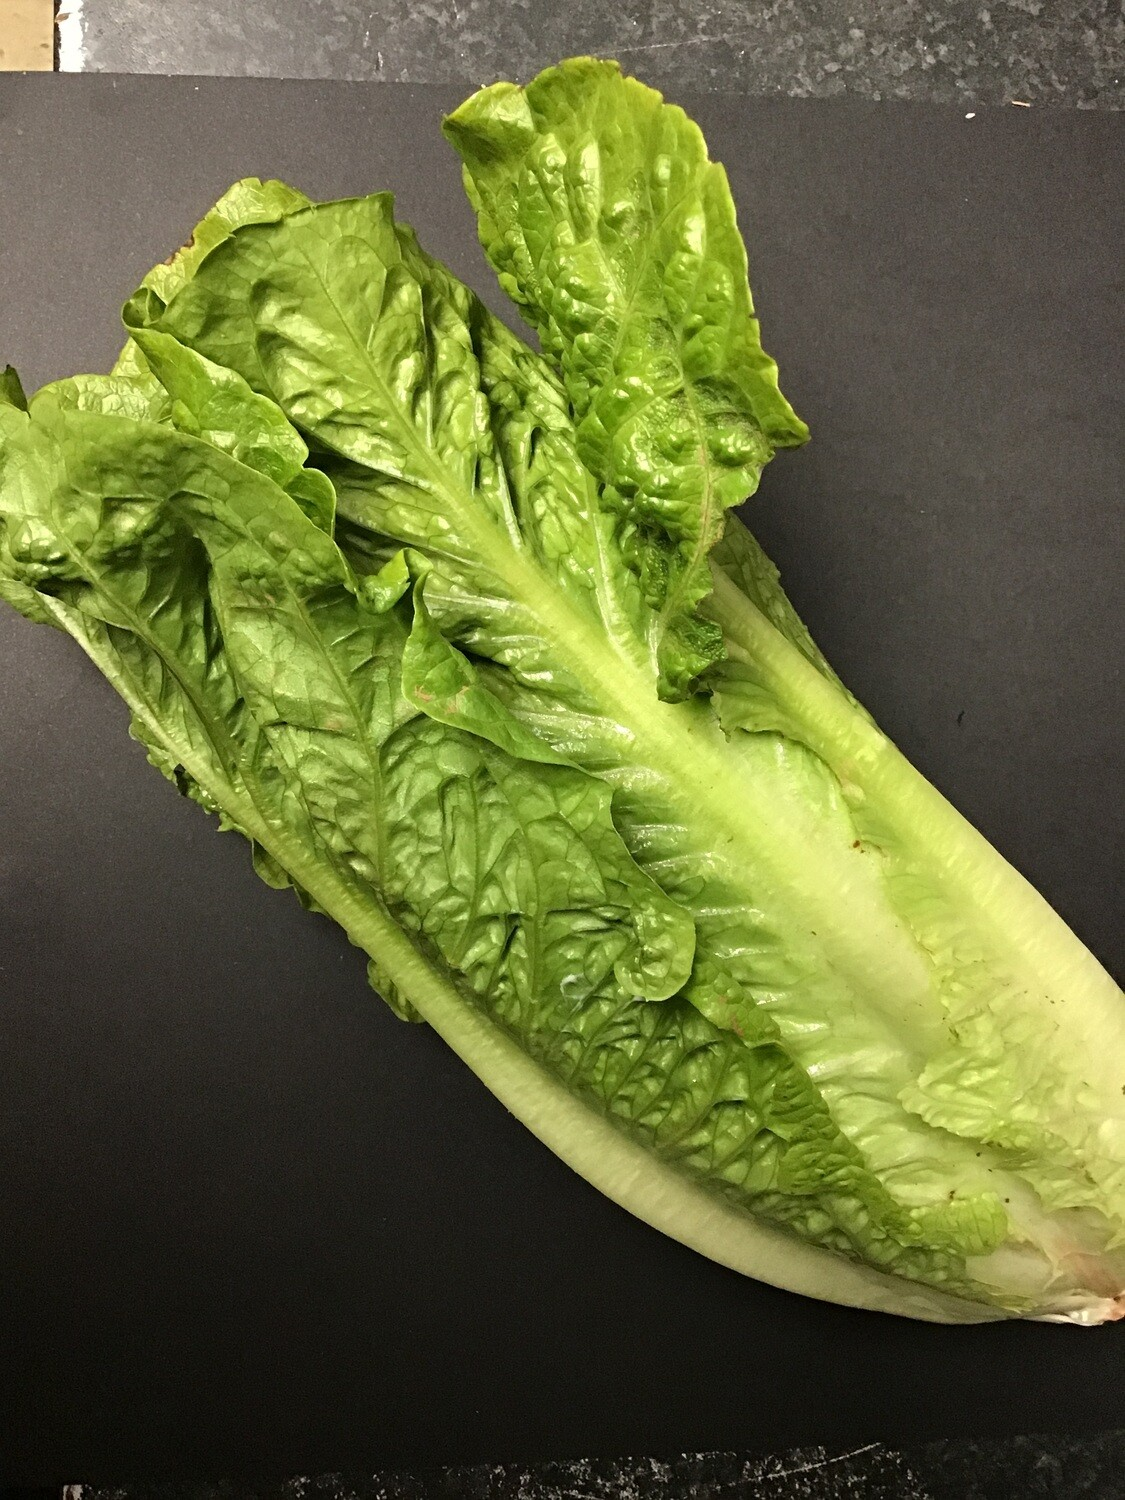 Romain/Cos Lettuce per head